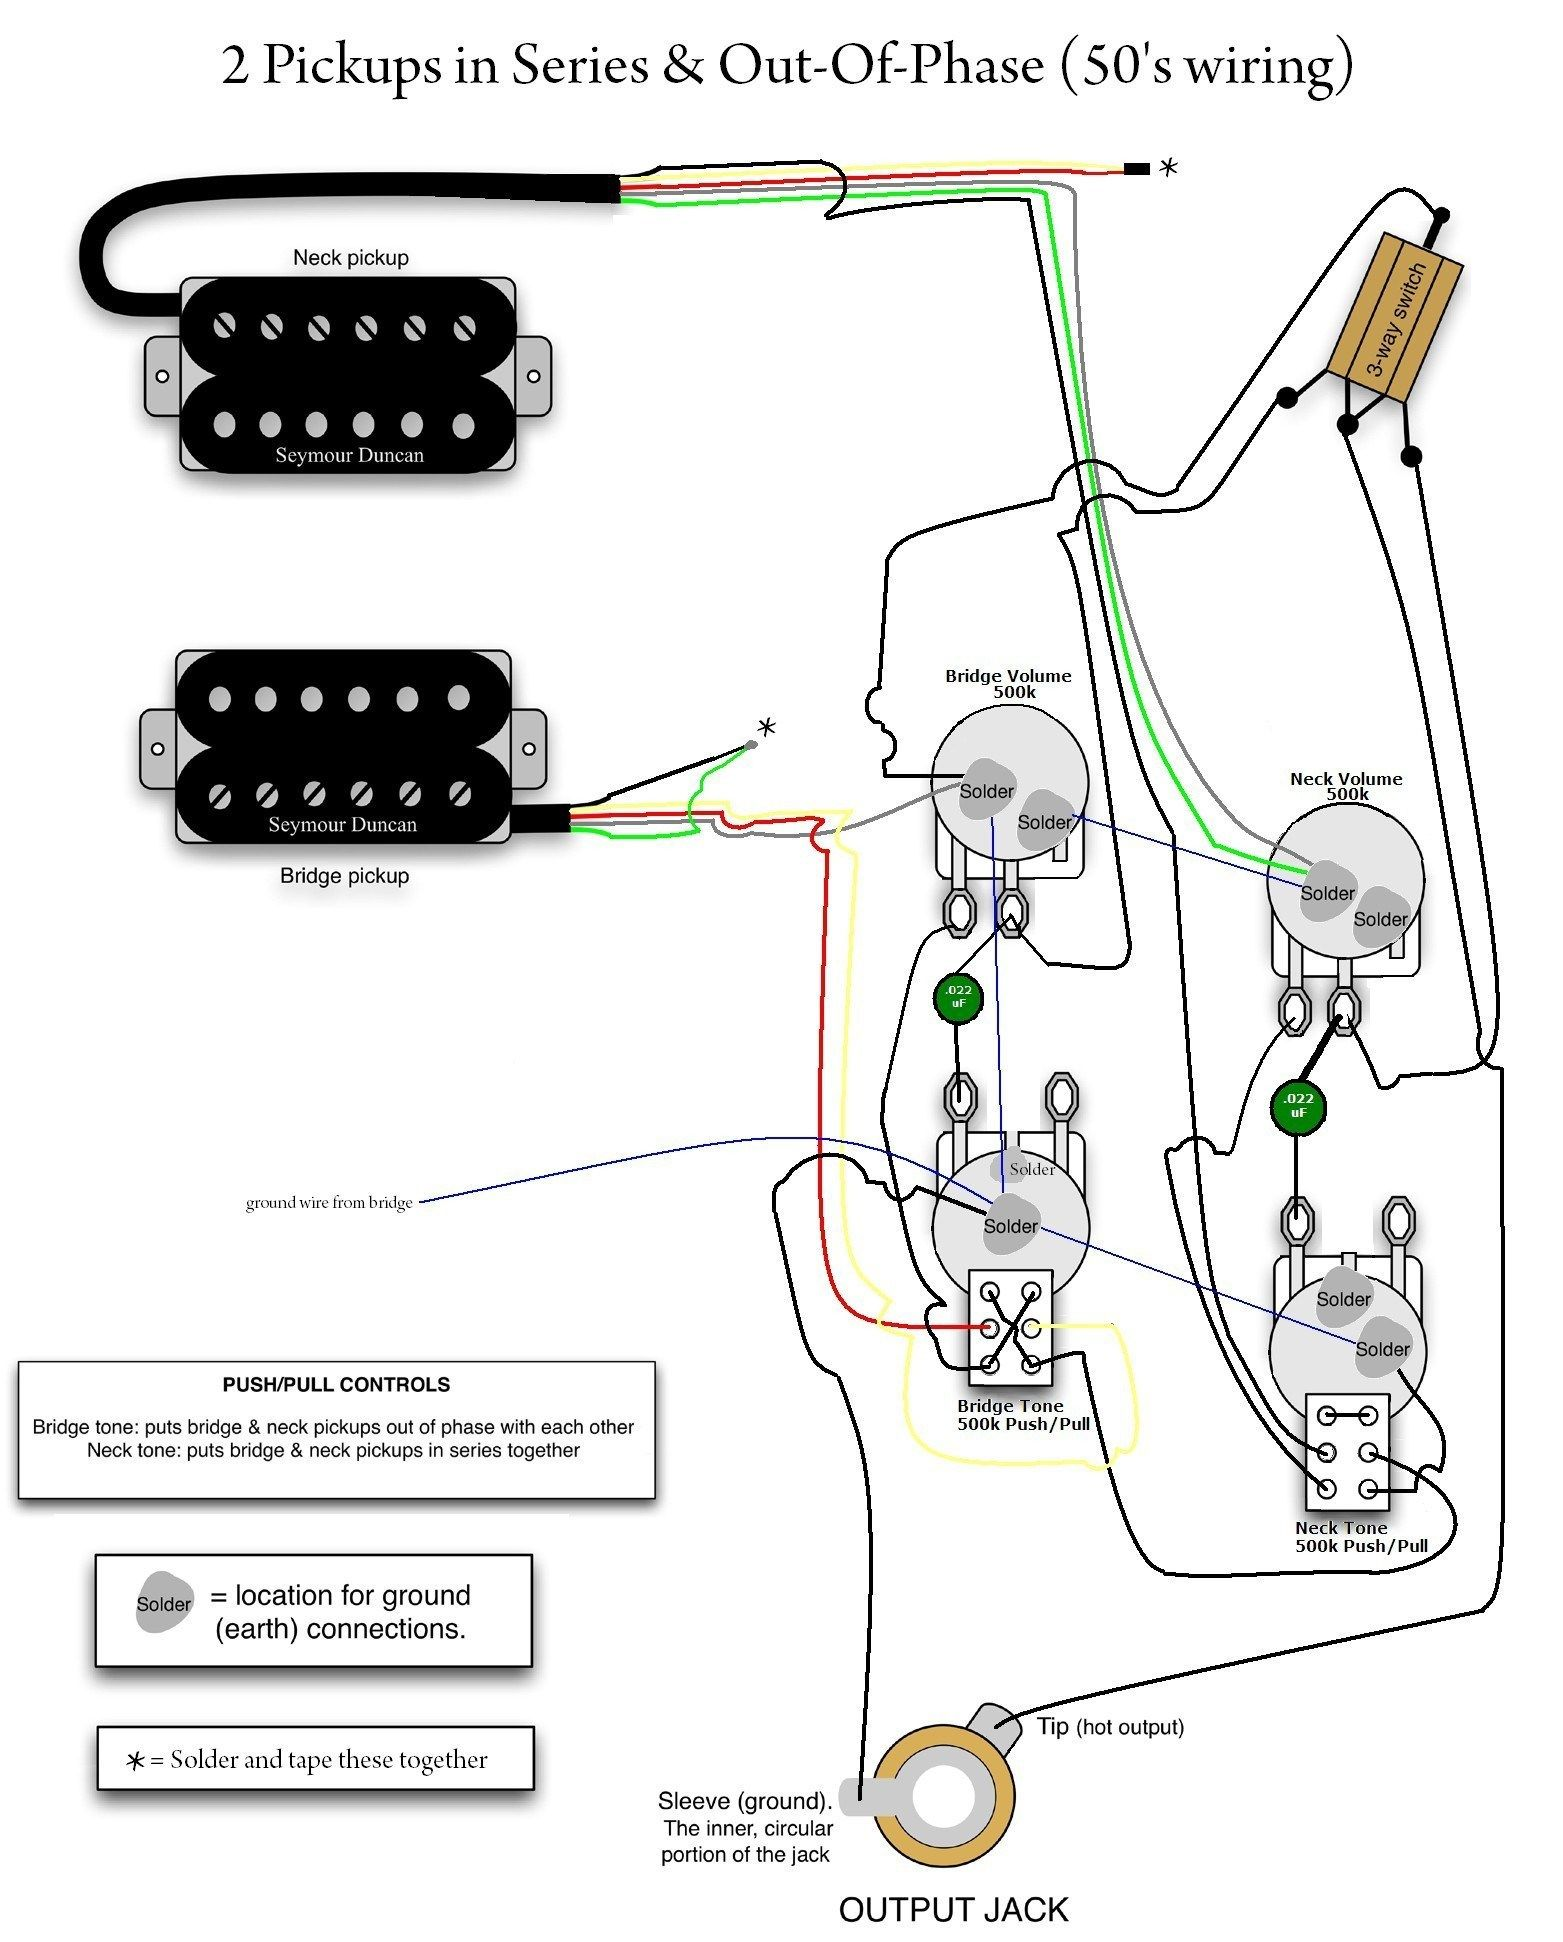 Fine Wiring Diagram For Electric Guitar Gibson 57 Classic Wiring Diagram Wiring Diagram Rh 4 Galeriehammer Ch Epiphone Les Paul Standard 2 Humbucker Wiring Diag